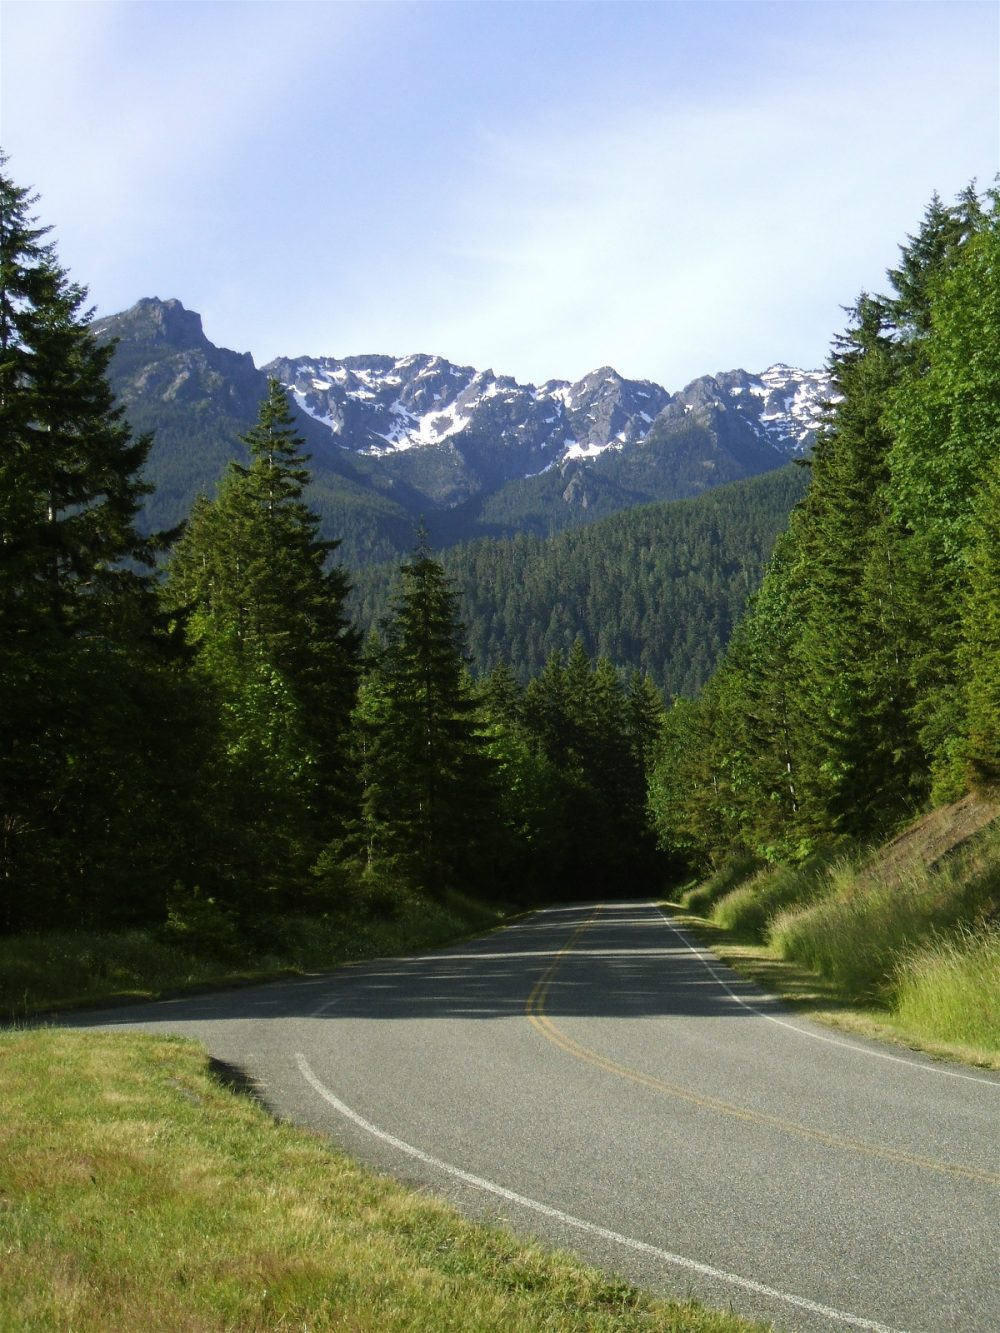 """""""This first major pullout on the Hurricane Ridge road features a view down the mountain of the Strait of Juan de Fuca, Port Angeles, and the features of the northern tip of the Olympic Peninsula. But what caught my eye was the opposite direction from """"the view"""" which offered a beautiful stunning view of the mountain ridges toward which we were climbing."""" - Photo & caption by Glenn Scofield Williams"""